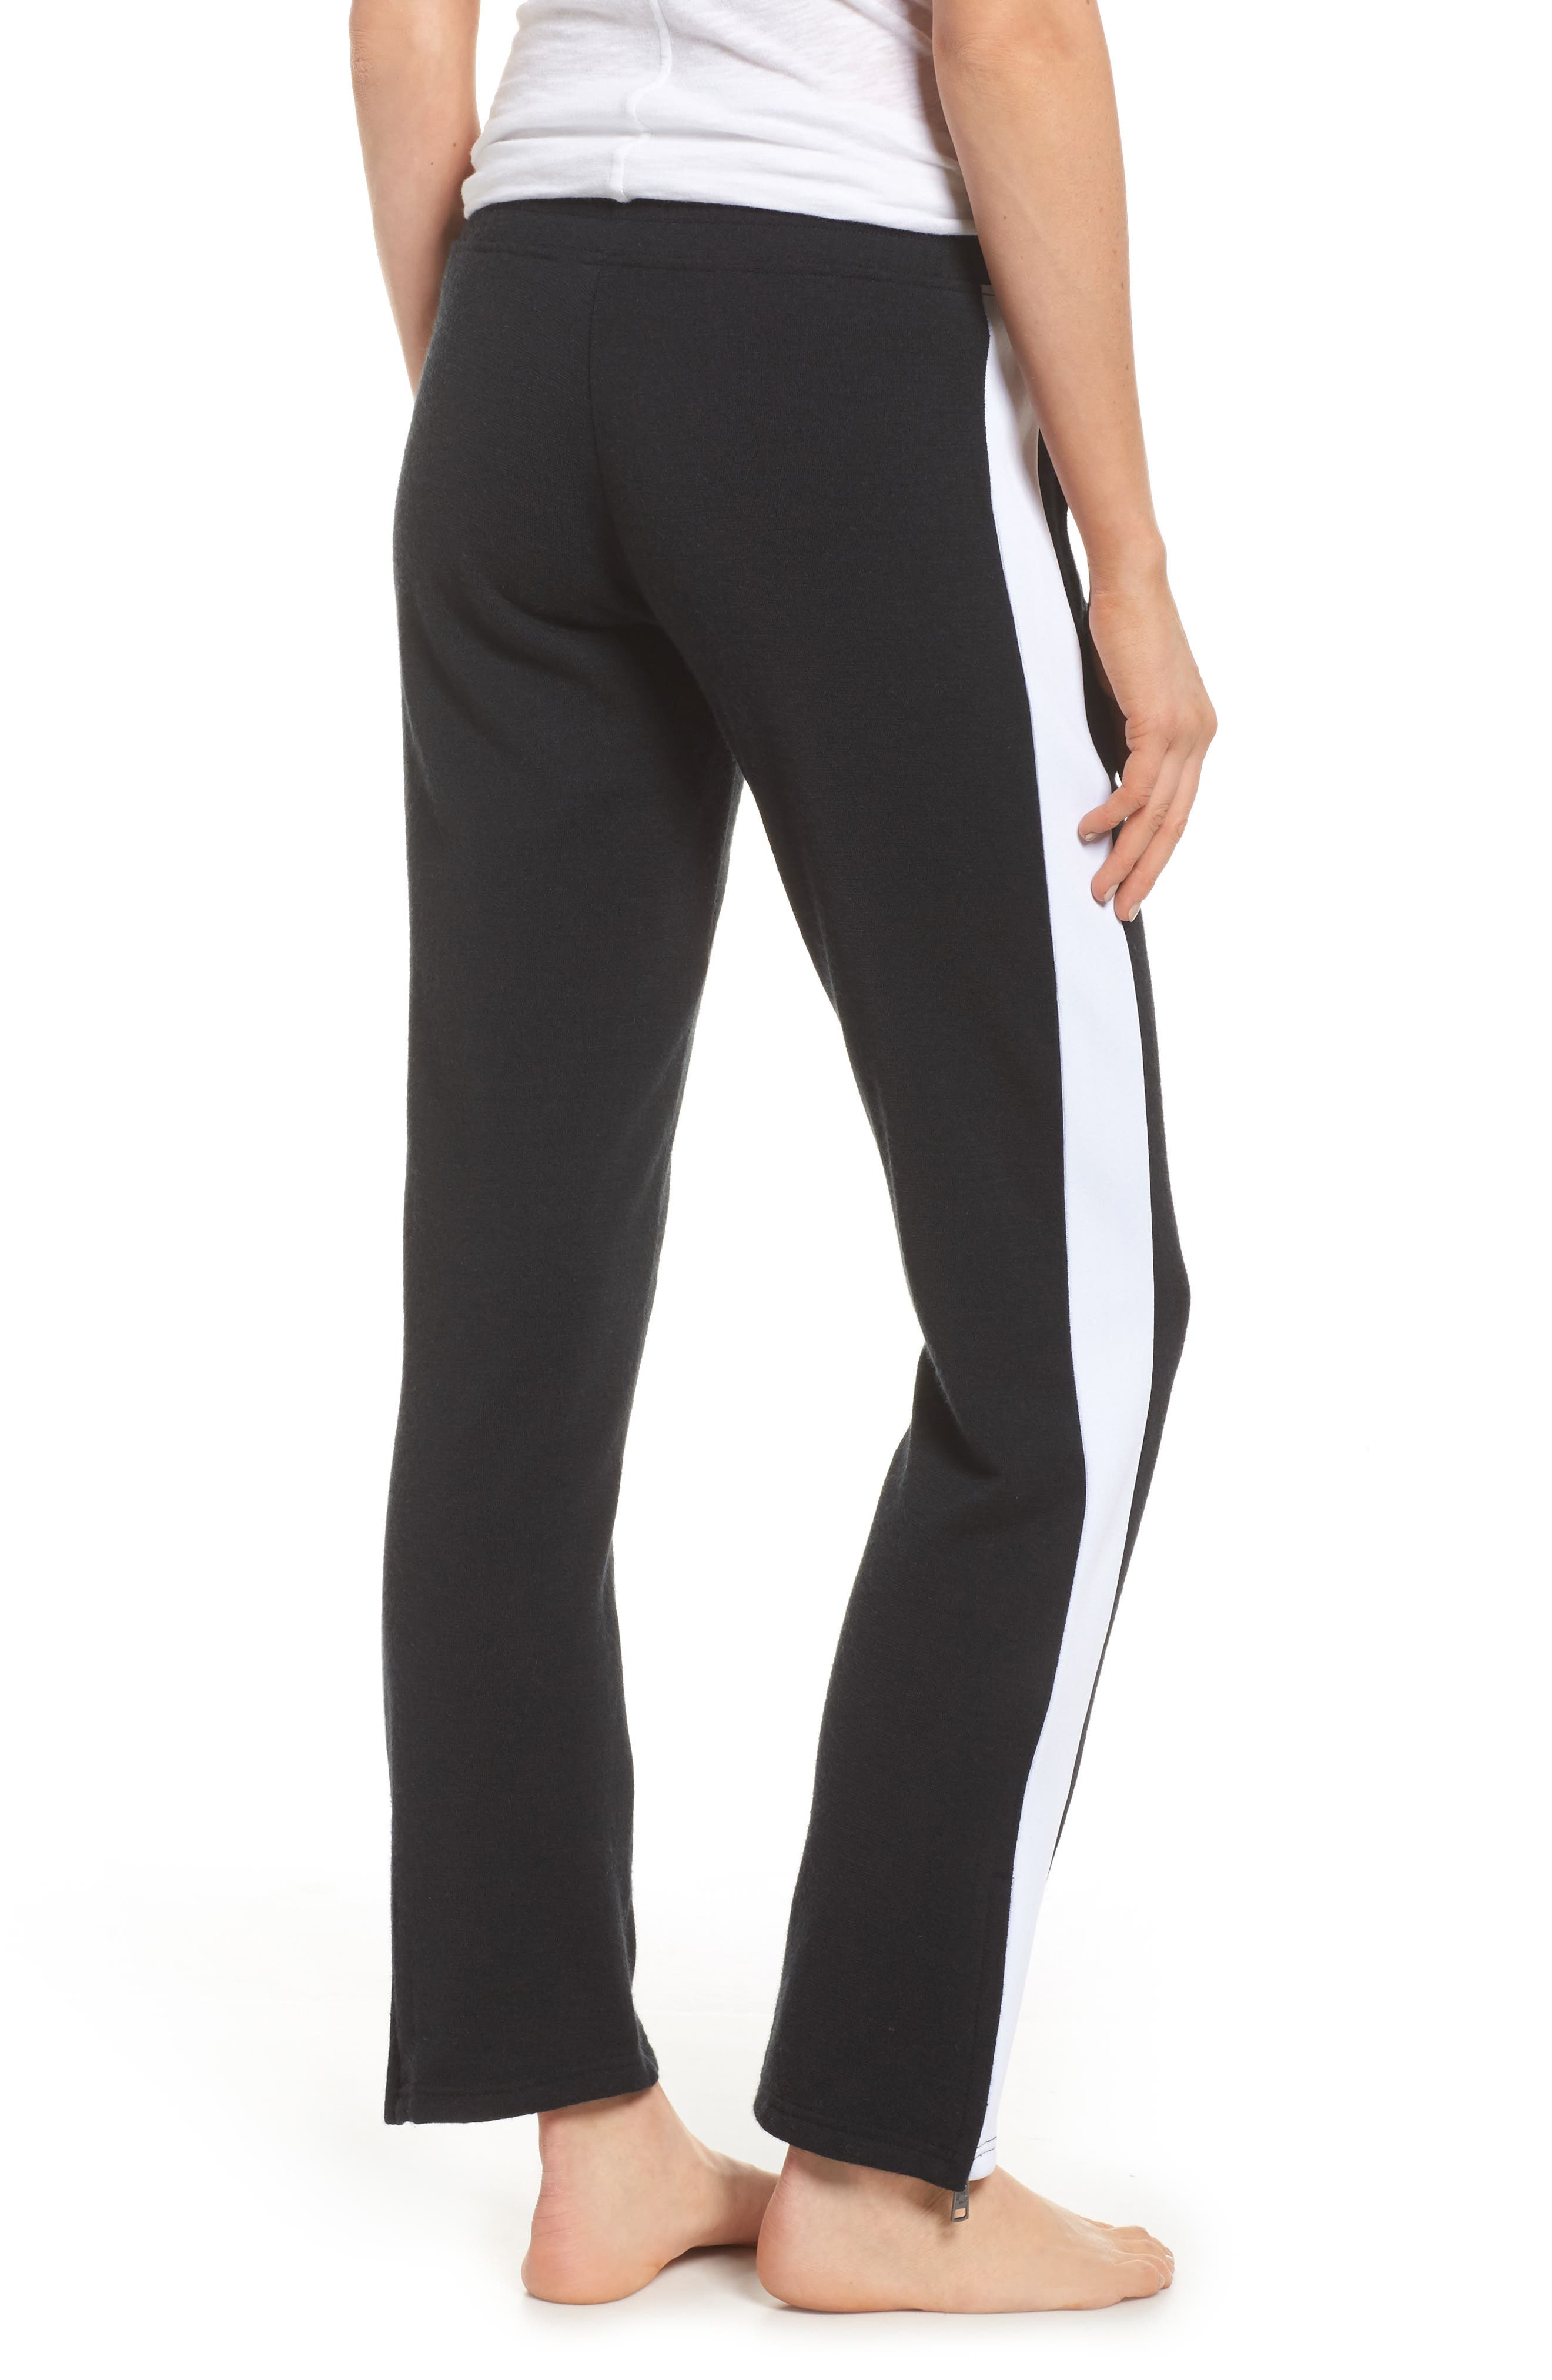 Lizy Track Pants,                             Alternate thumbnail 2, color,                             BLACK